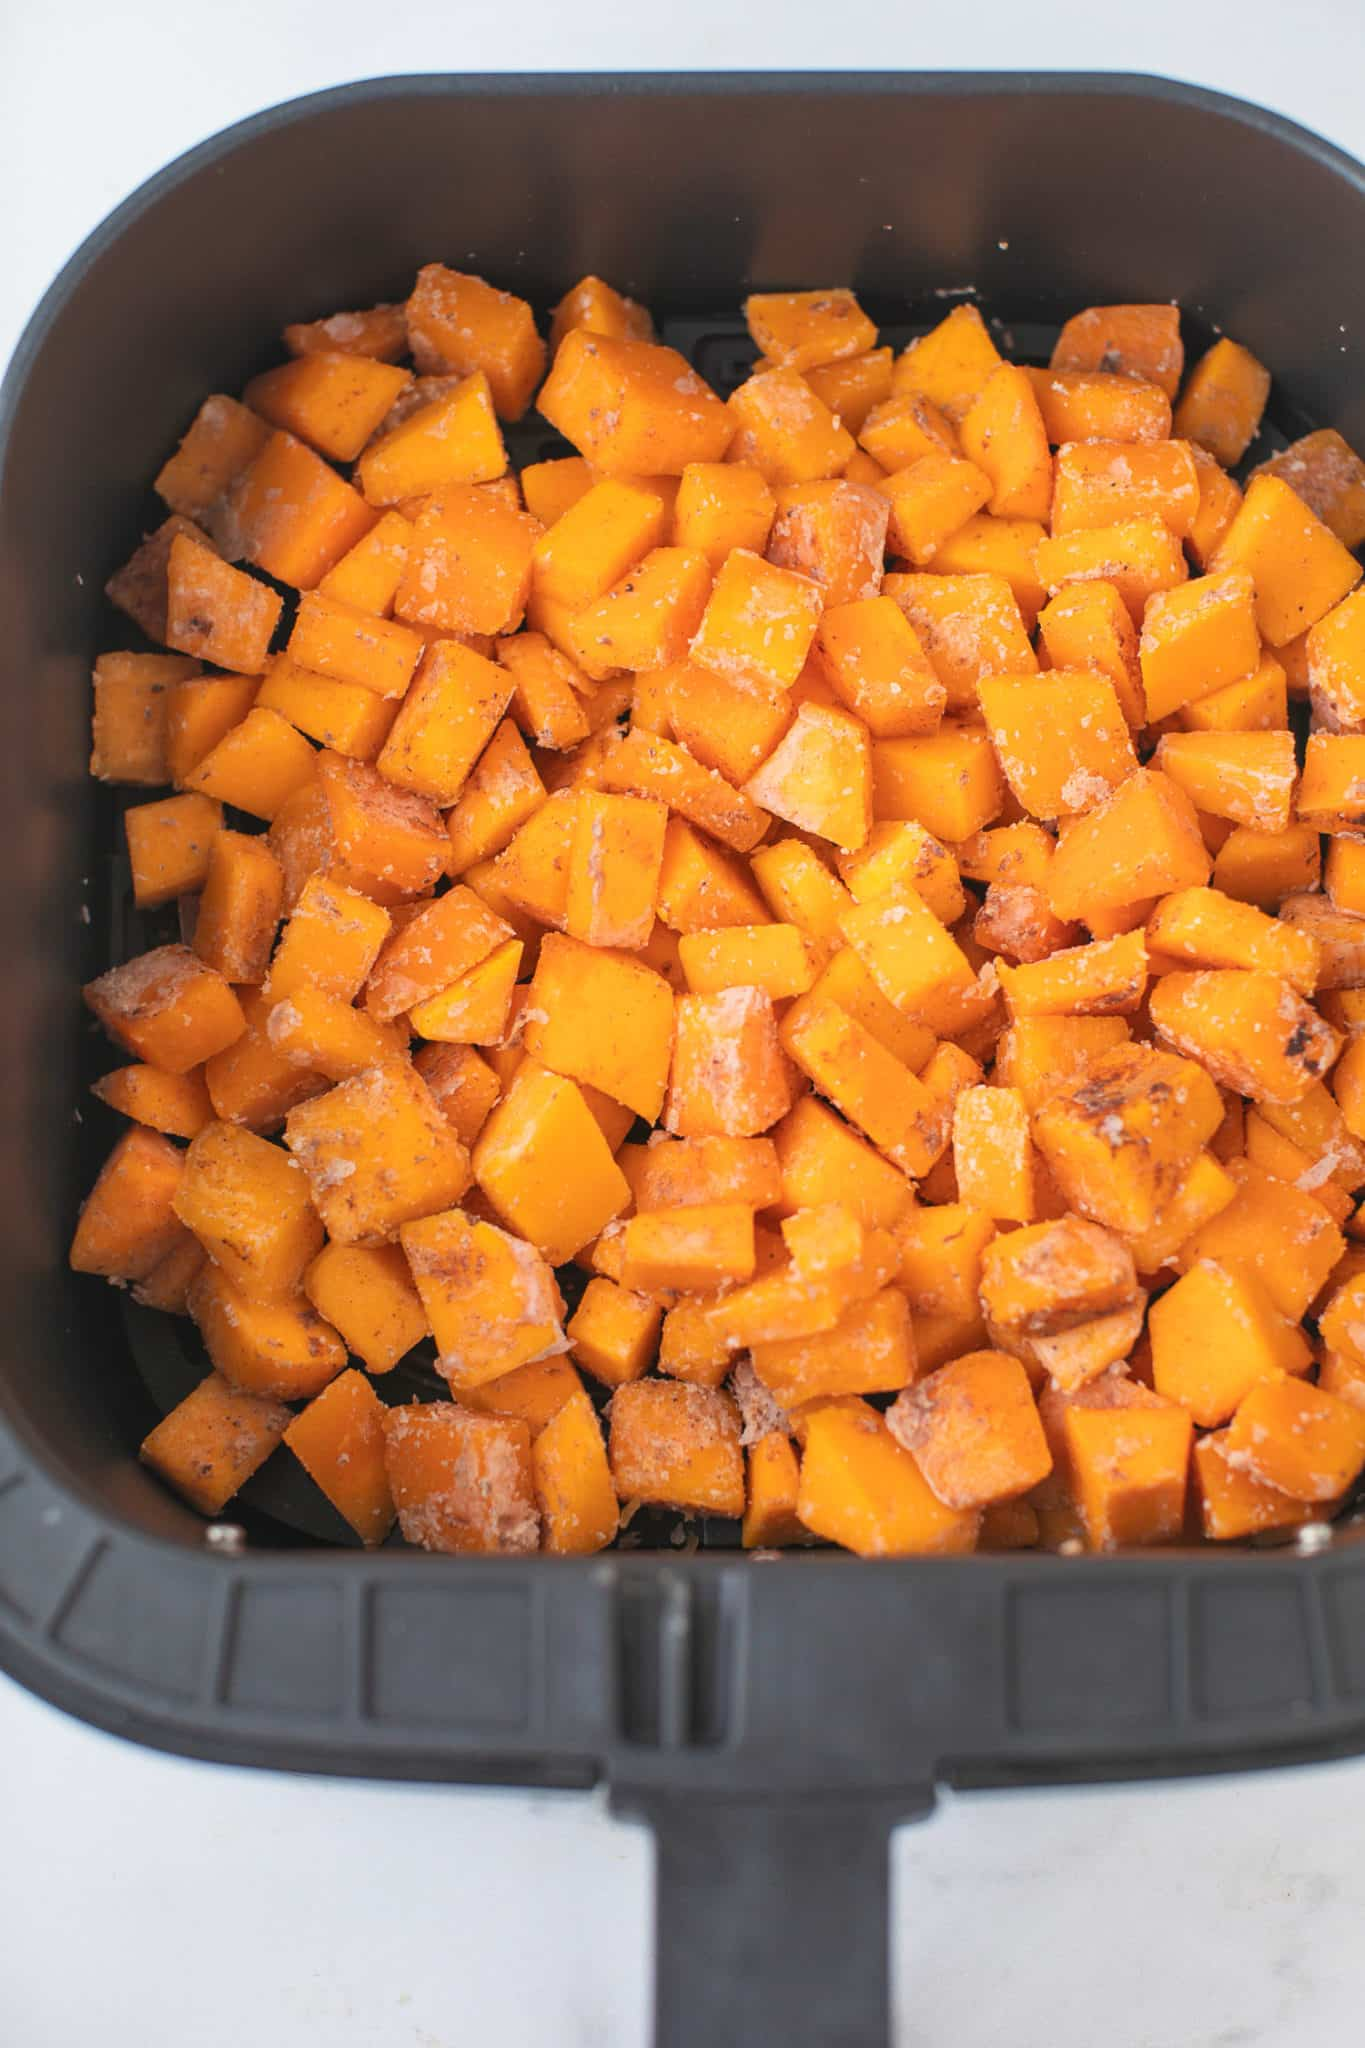 squash cubes in an air fryer basket ready to be cooked